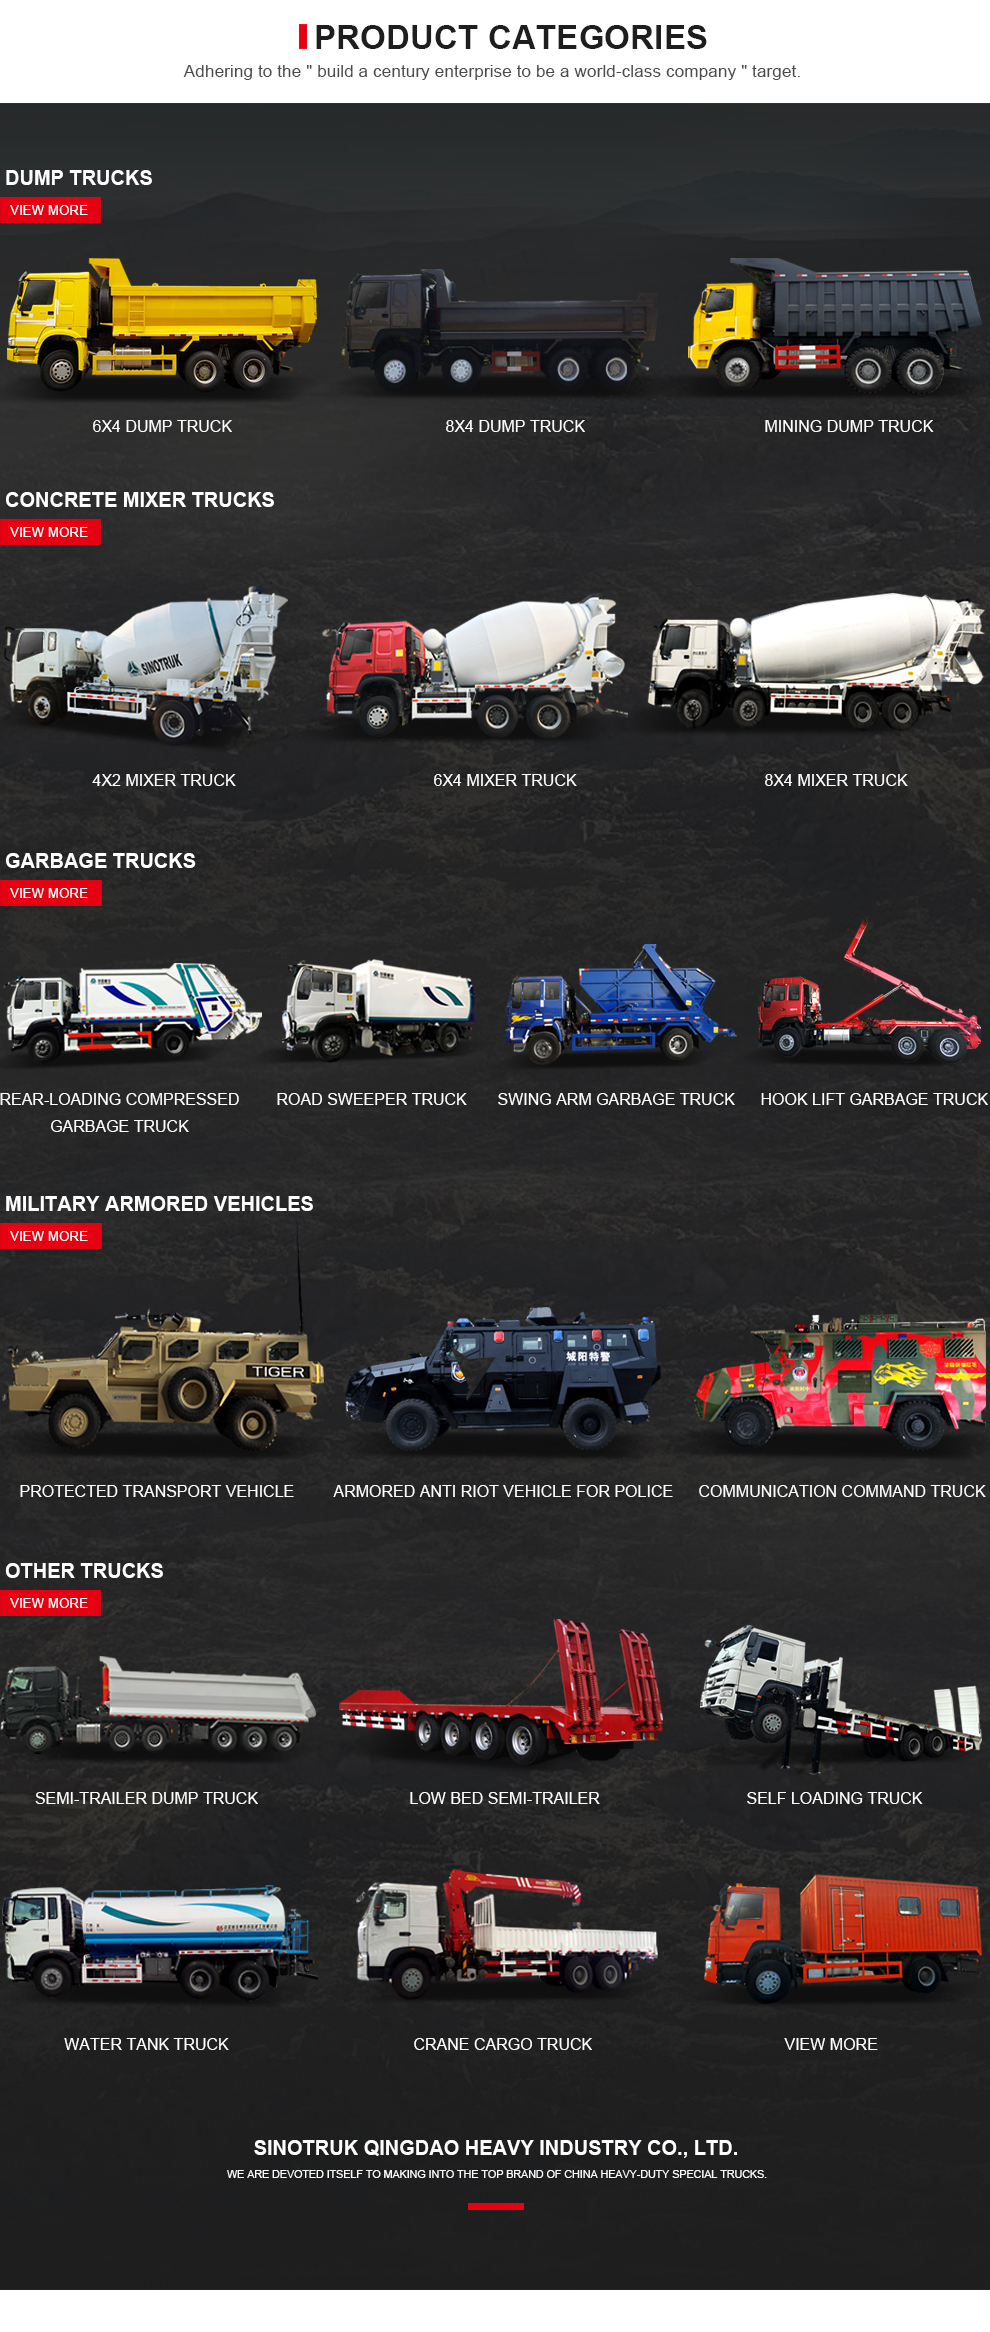 SINOTRUK BRAND NEW FOAM AND WATER FIRE FIGHTING TRUCK